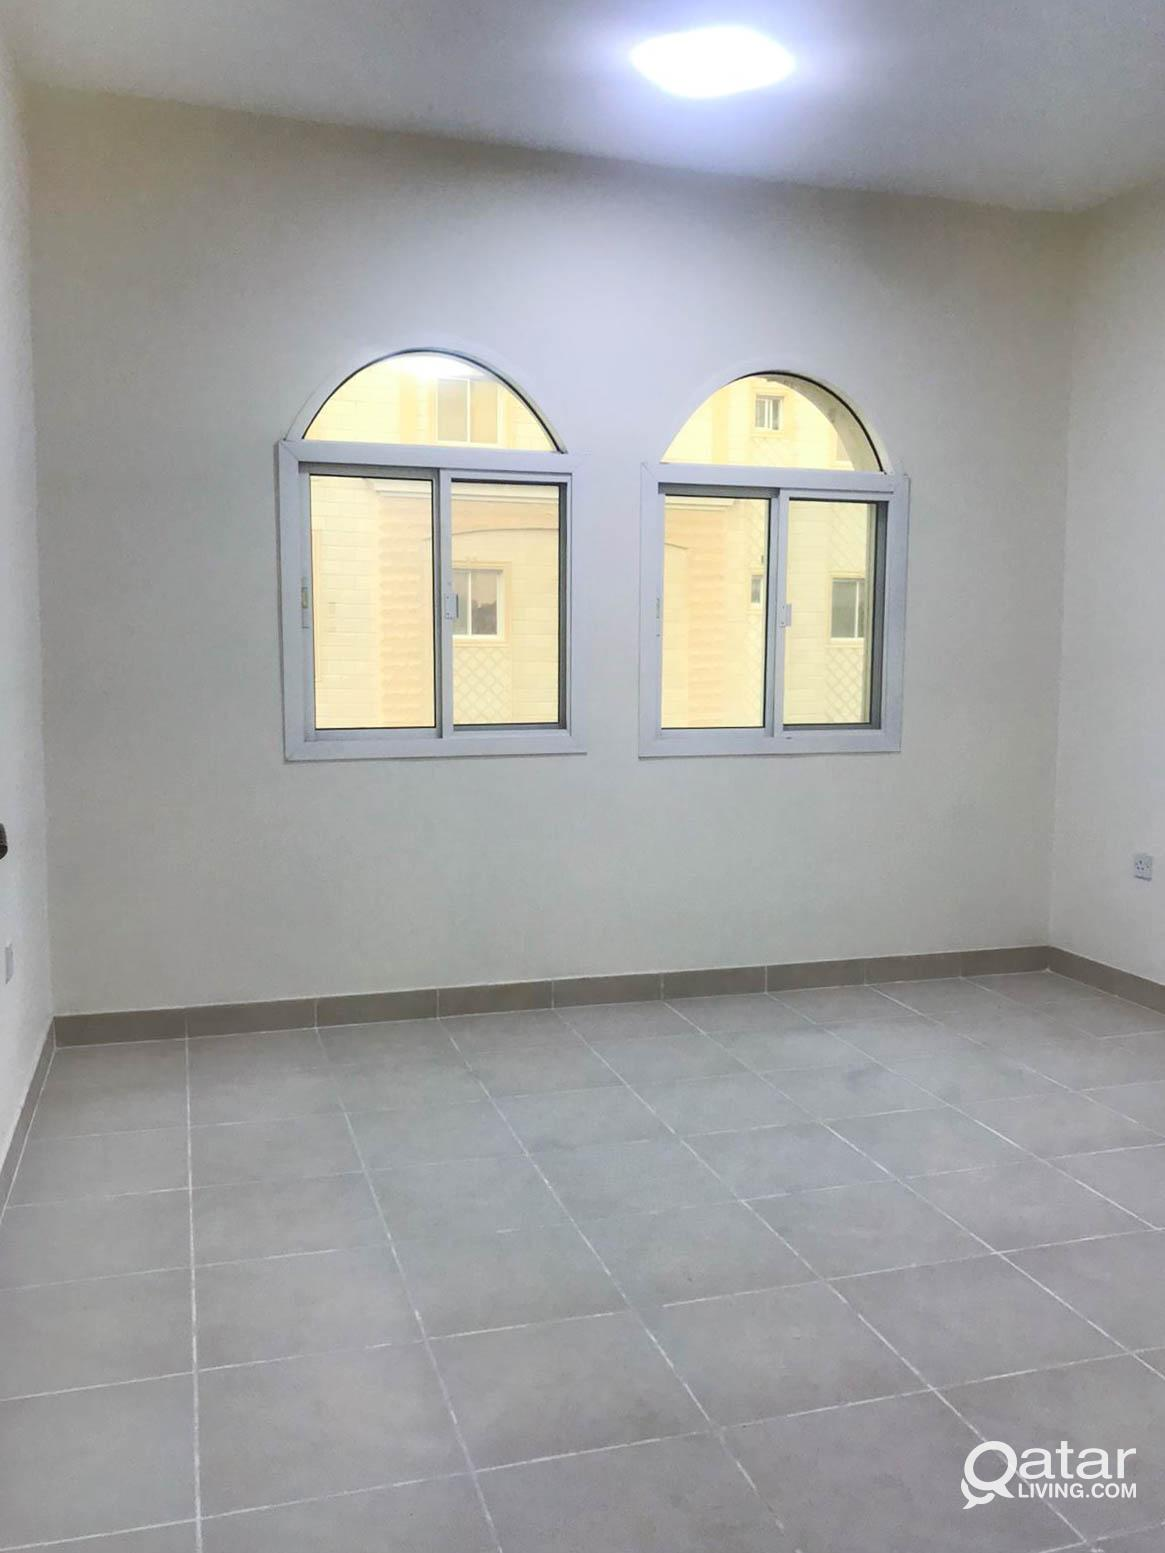 PROMOTION: Unfurnished, 3 BHK Apartment in Mansour